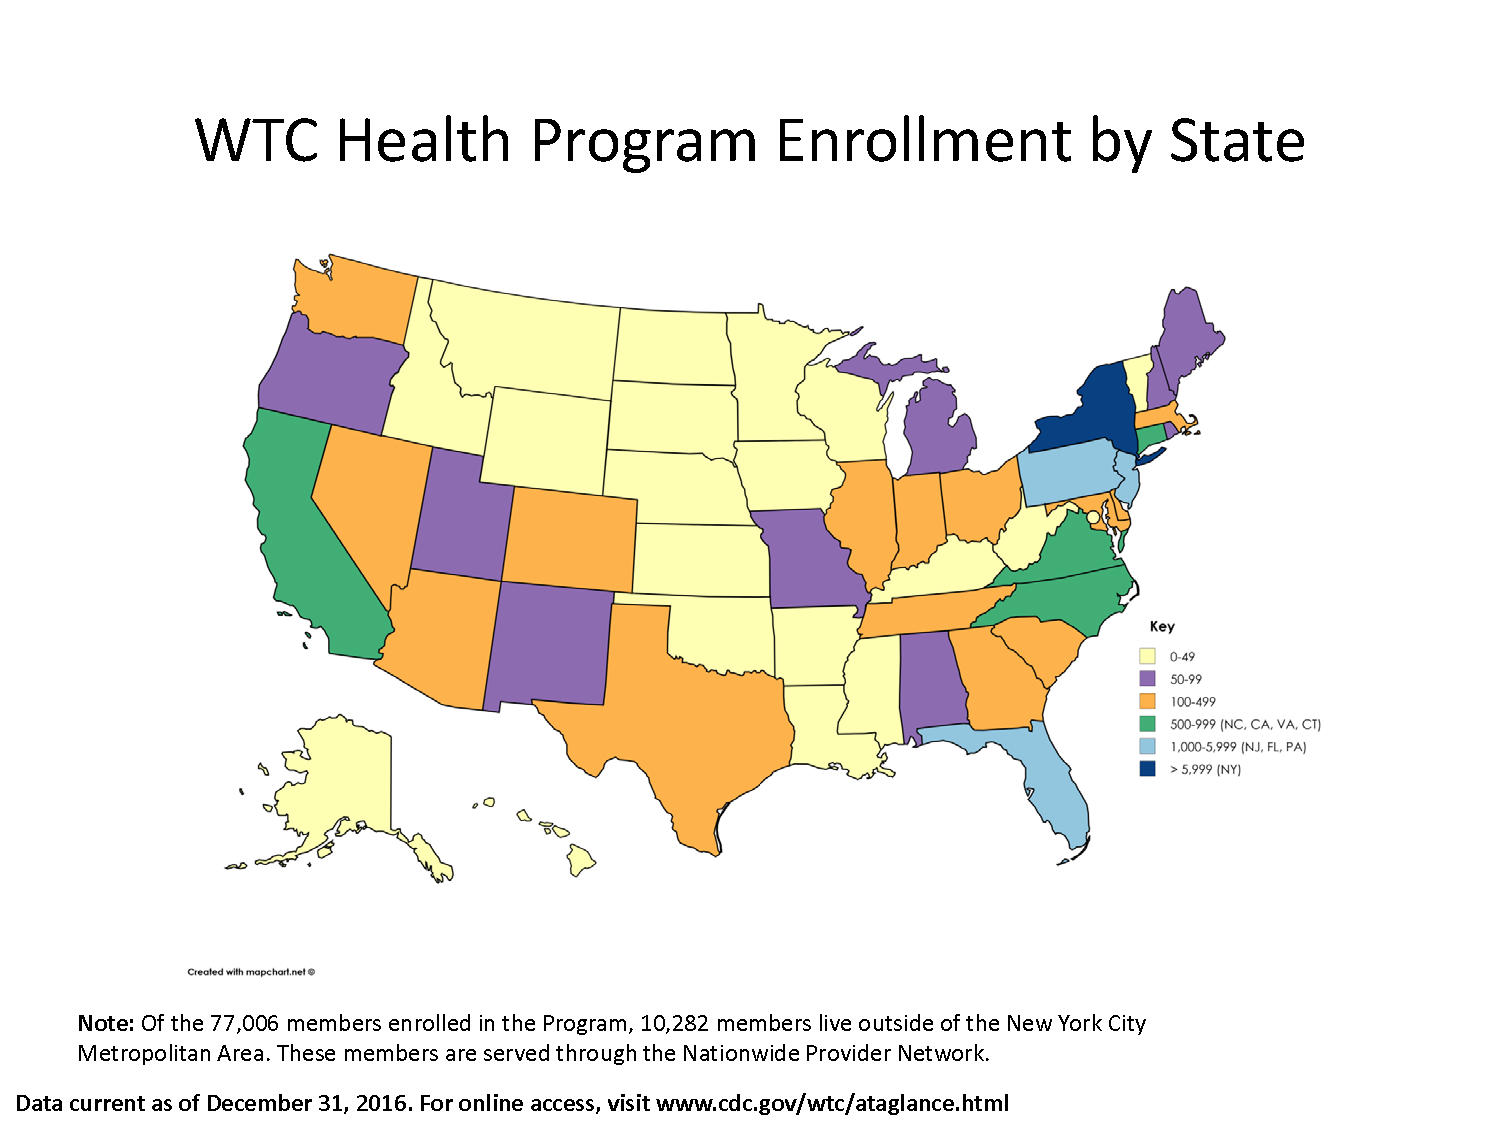 Map of the United States showing enrollment by state. 